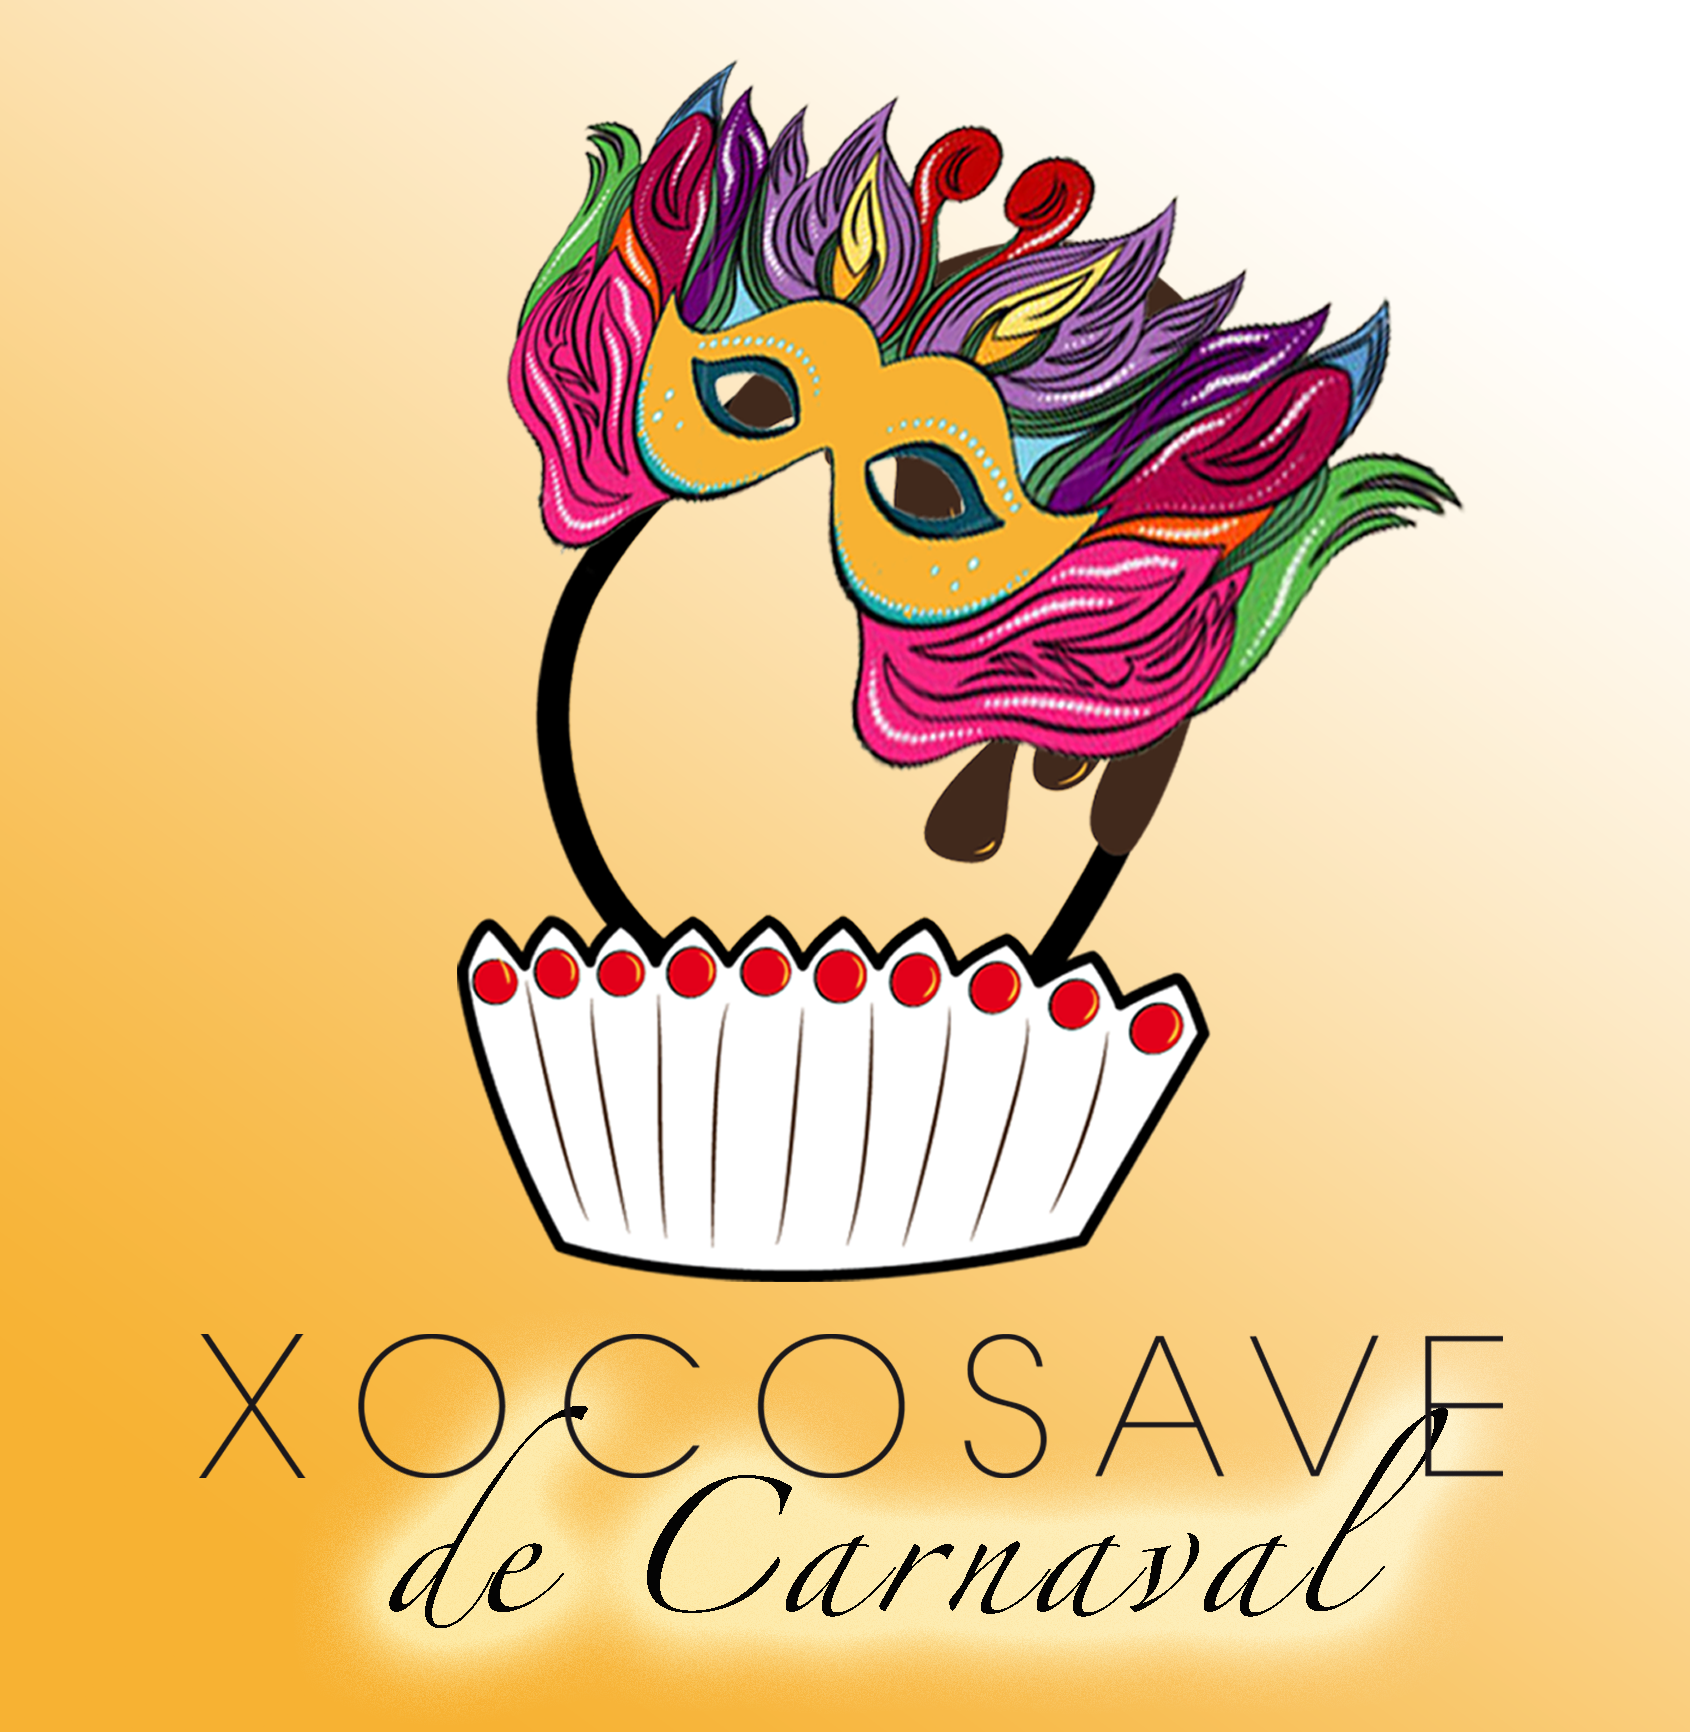 Xocosave Carnaval.png